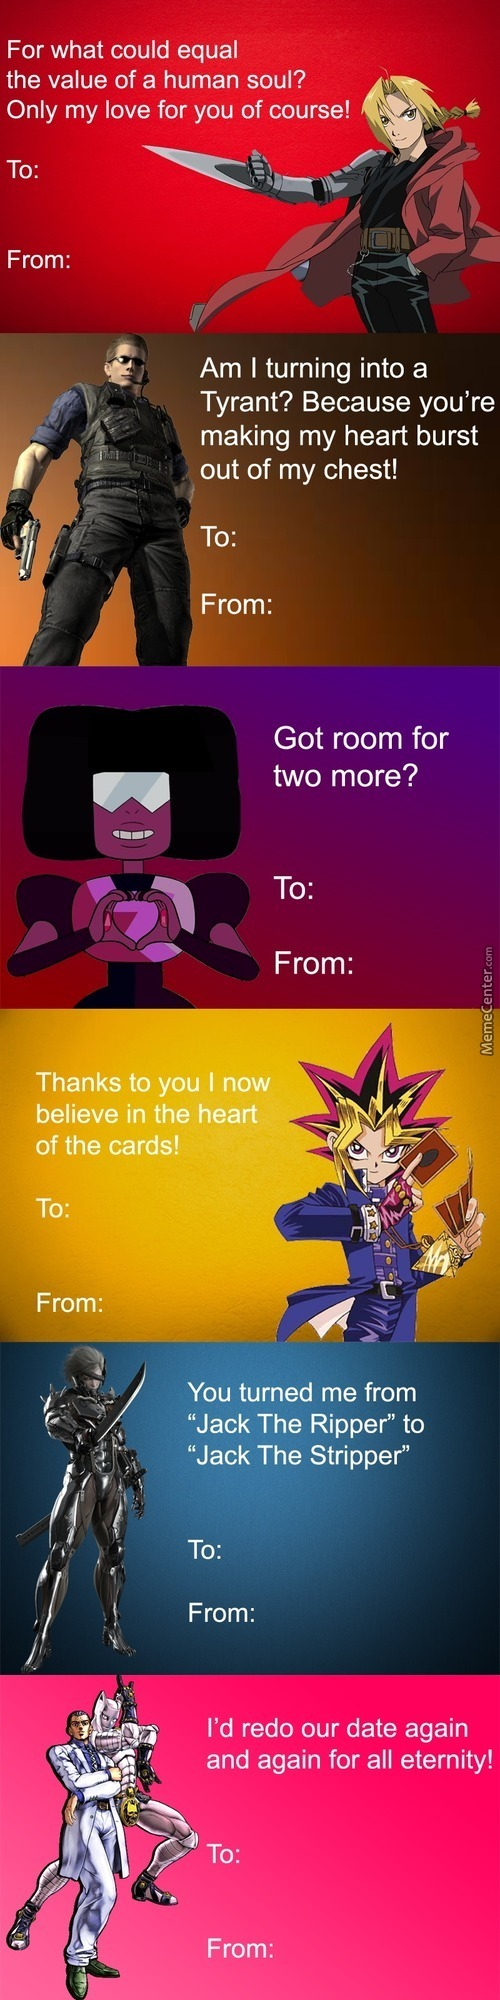 Valentines Day Letters For Everyone